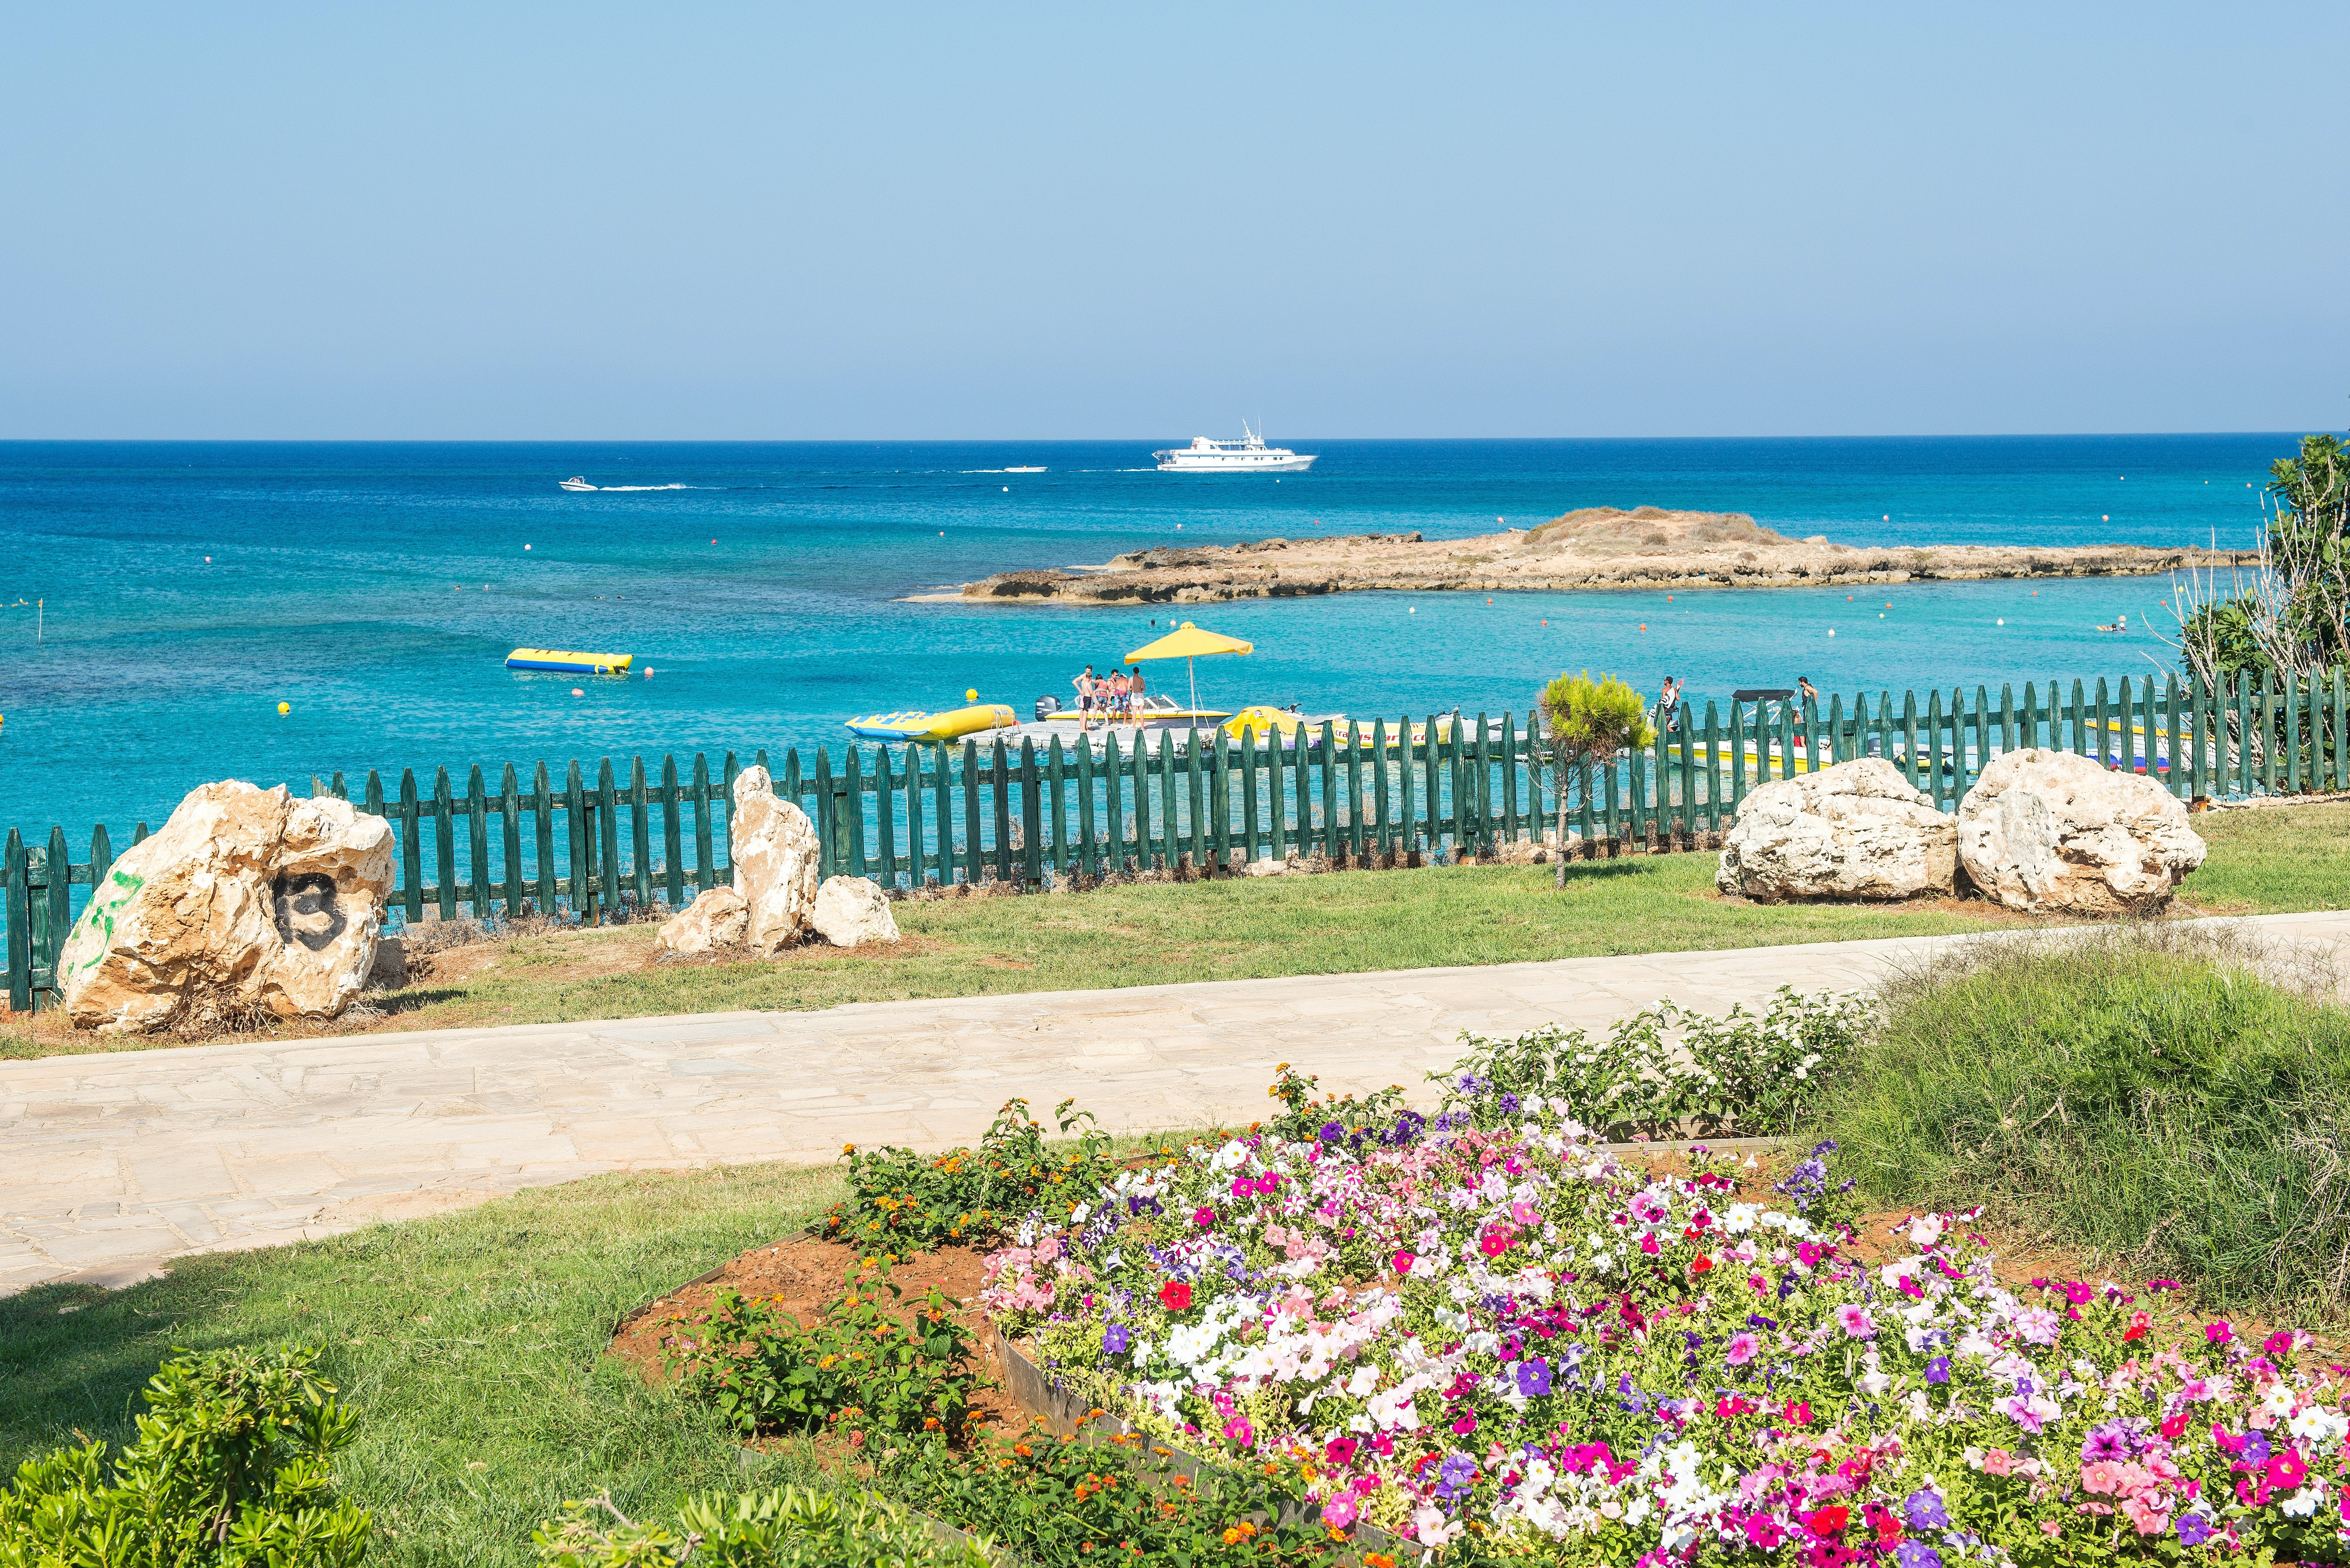 Fig Tree Bay, Cypern, bild 21 av 36